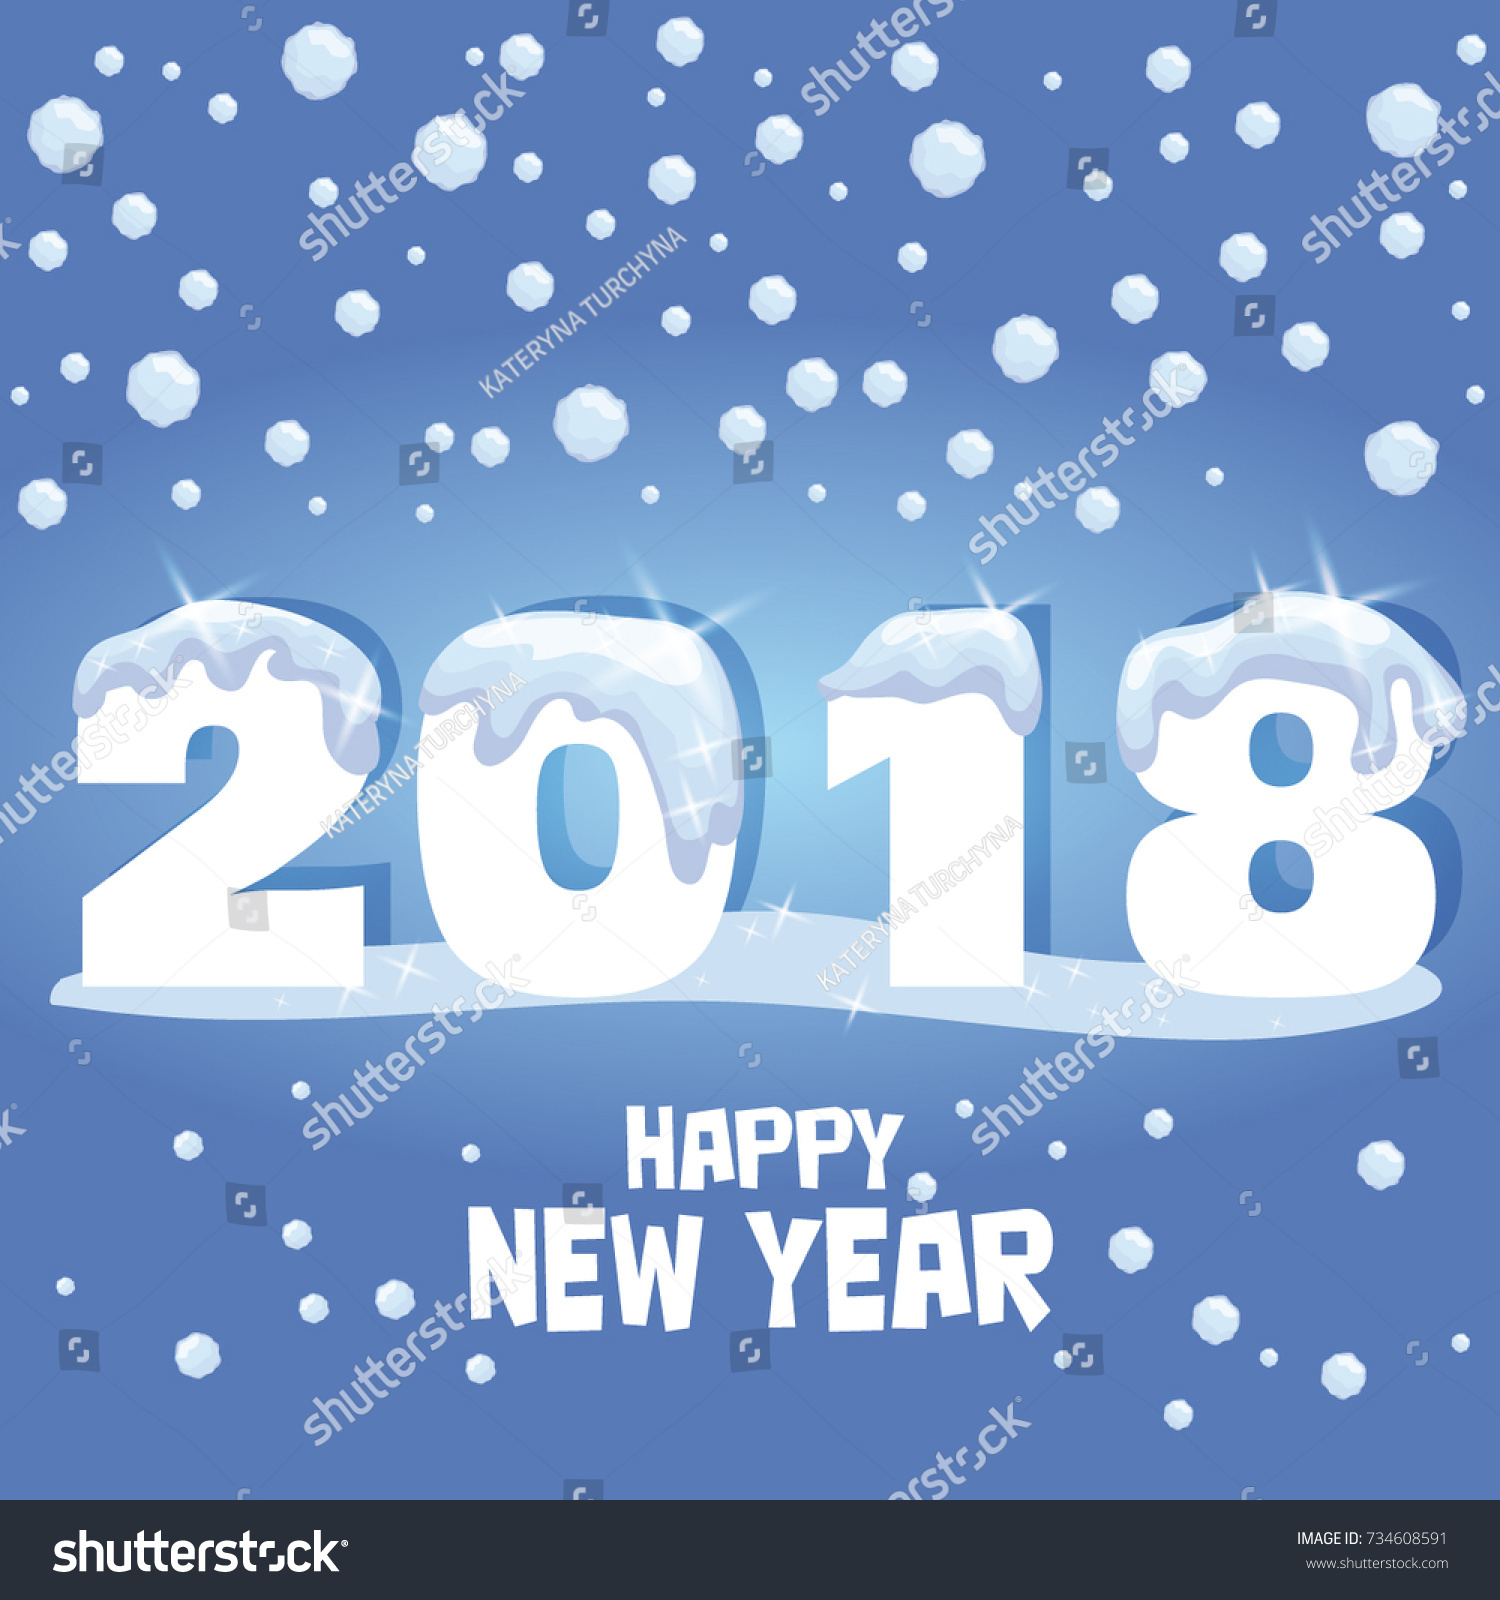 Happy new year greeting card vector stock vector 734608591 happy new year greeting card vector illustration new year design for congratulation cards kristyandbryce Choice Image